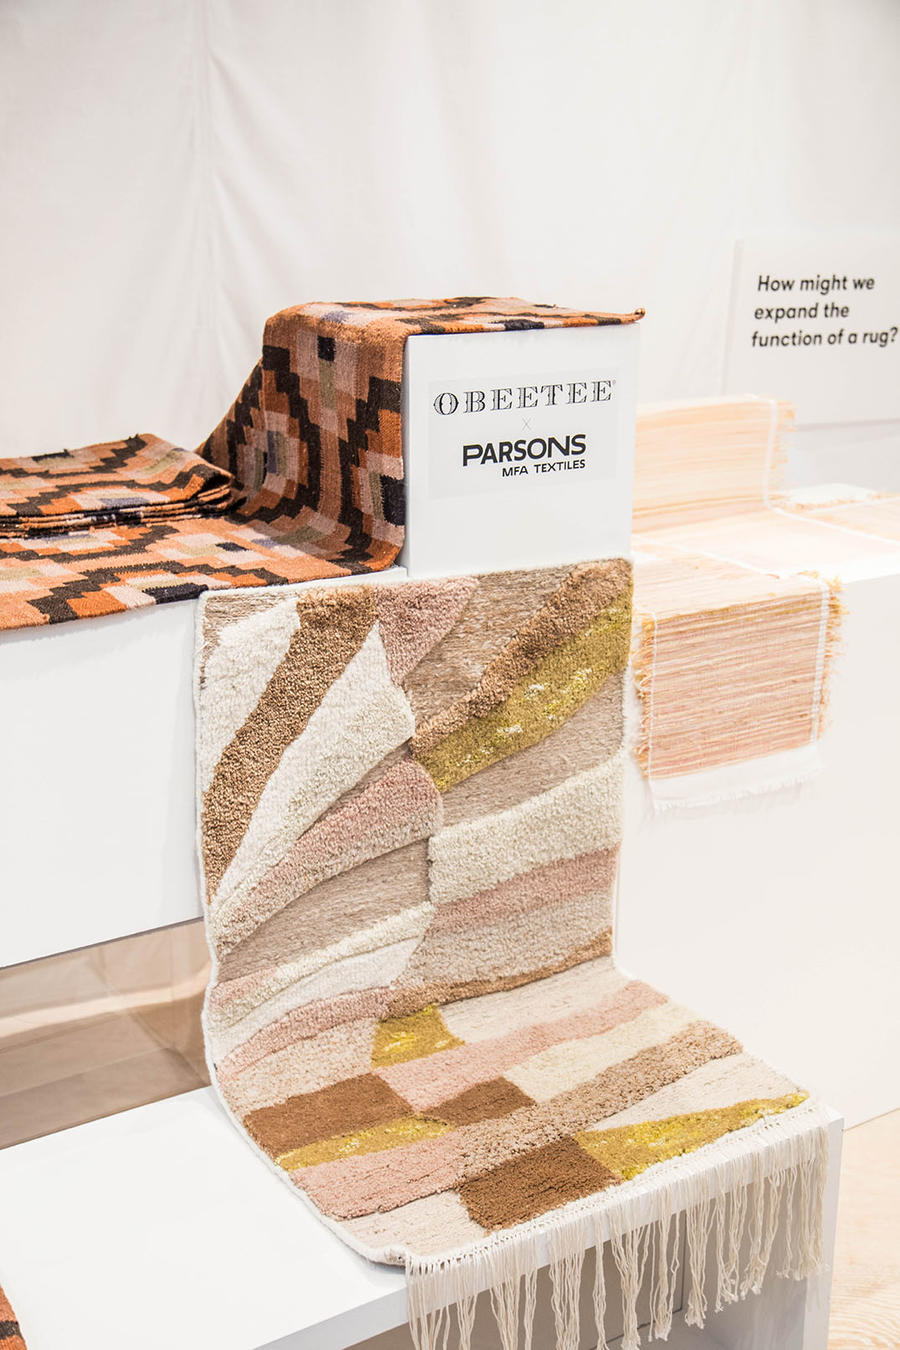 The exhibition of the Obeetee rugs that Parsons students designed.